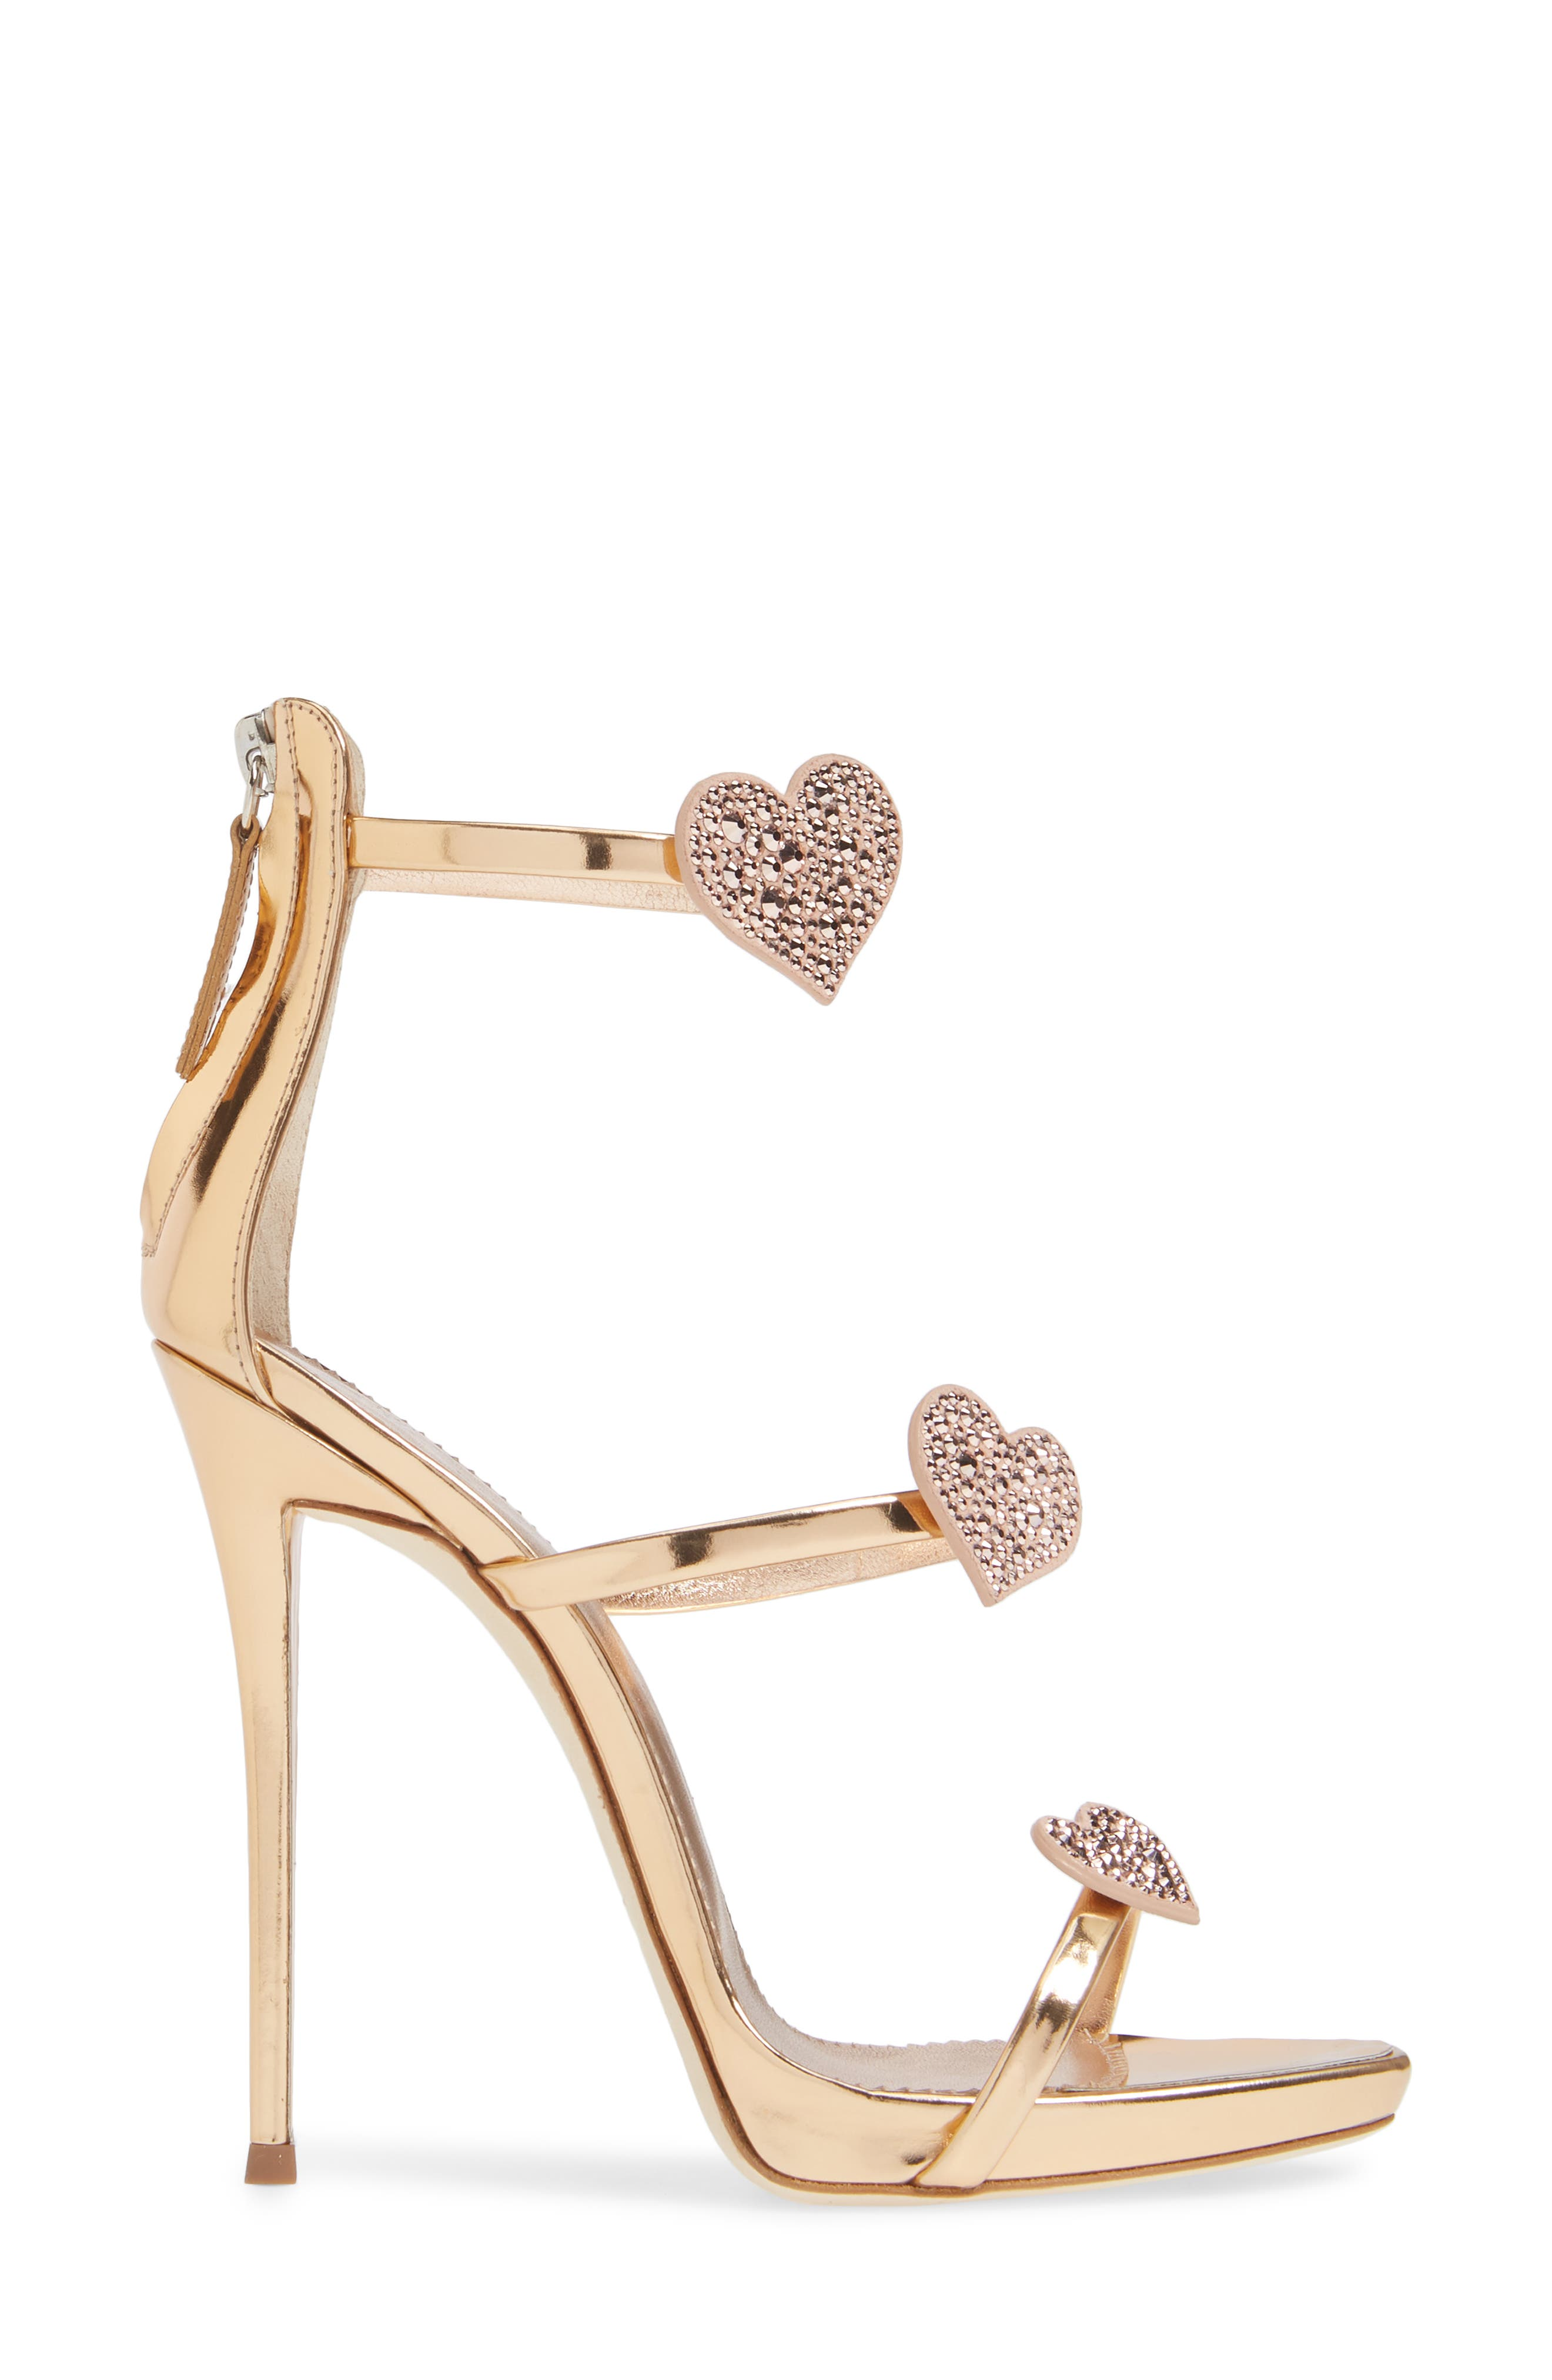 Triple Heart Strappy Sandal,                             Alternate thumbnail 3, color,                             ROSE GOLD